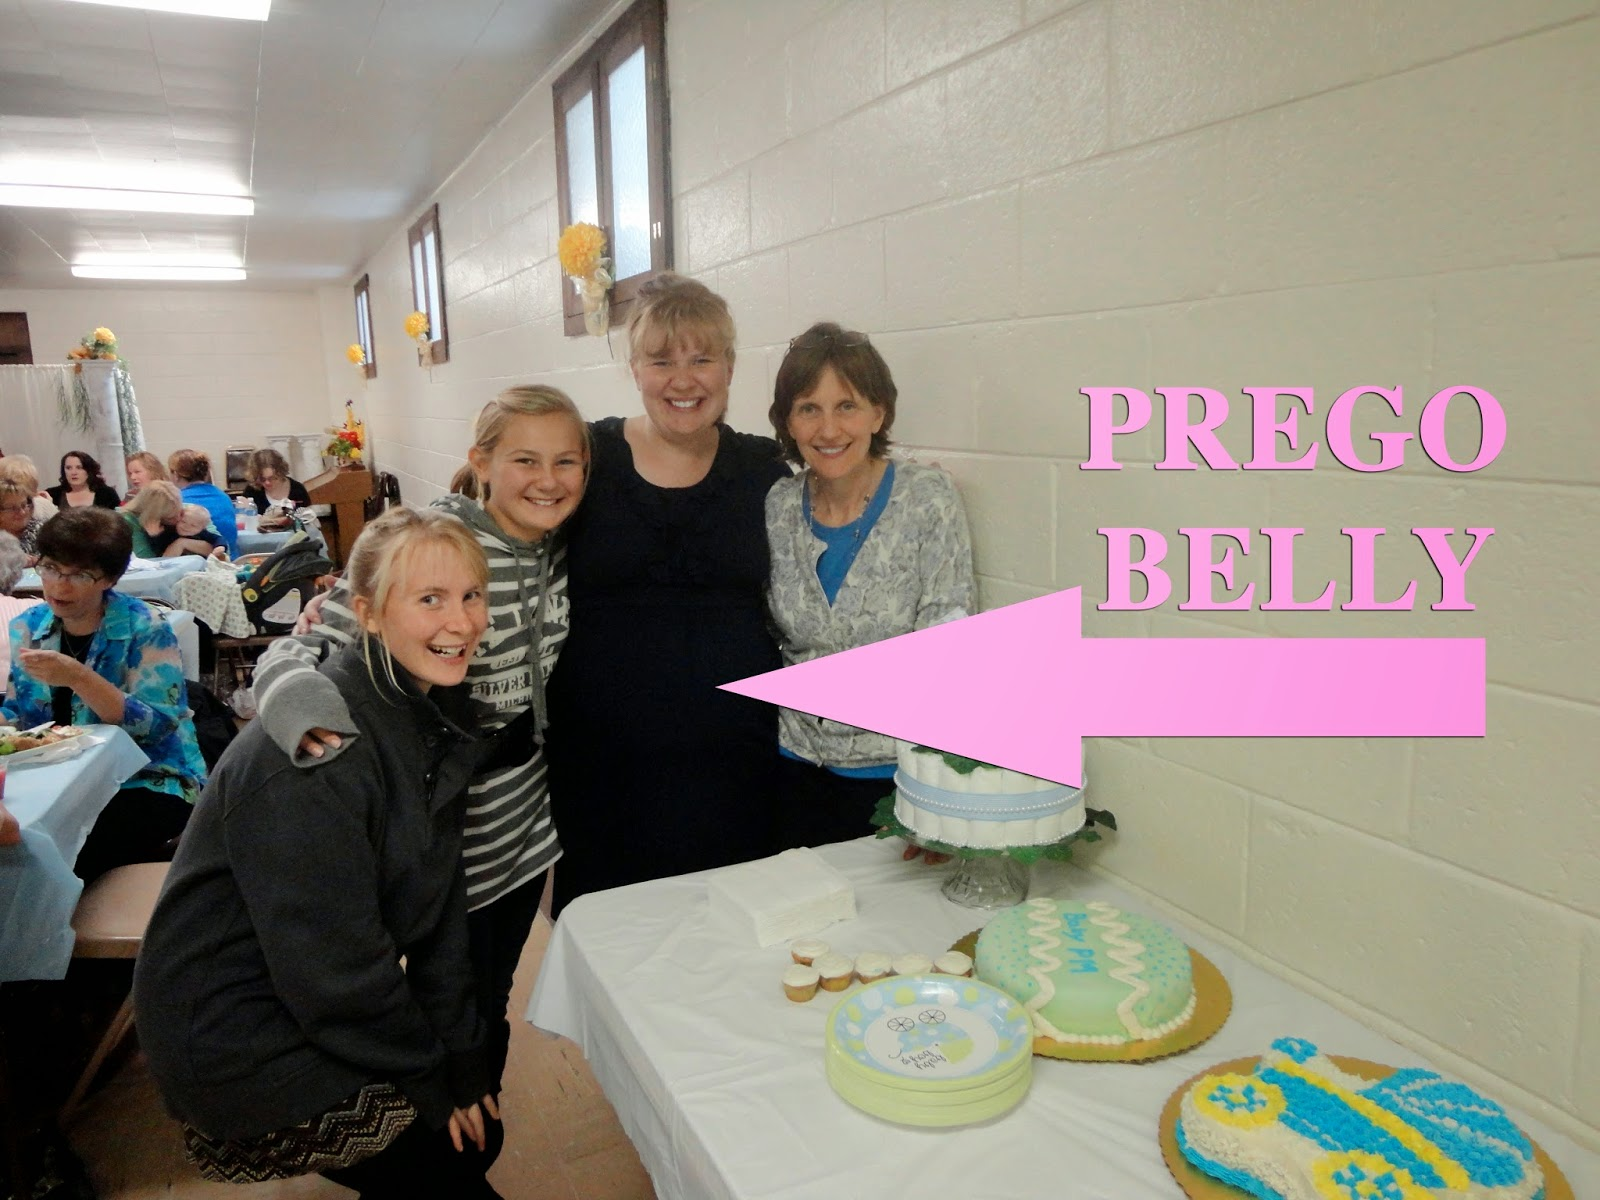 preggo belly